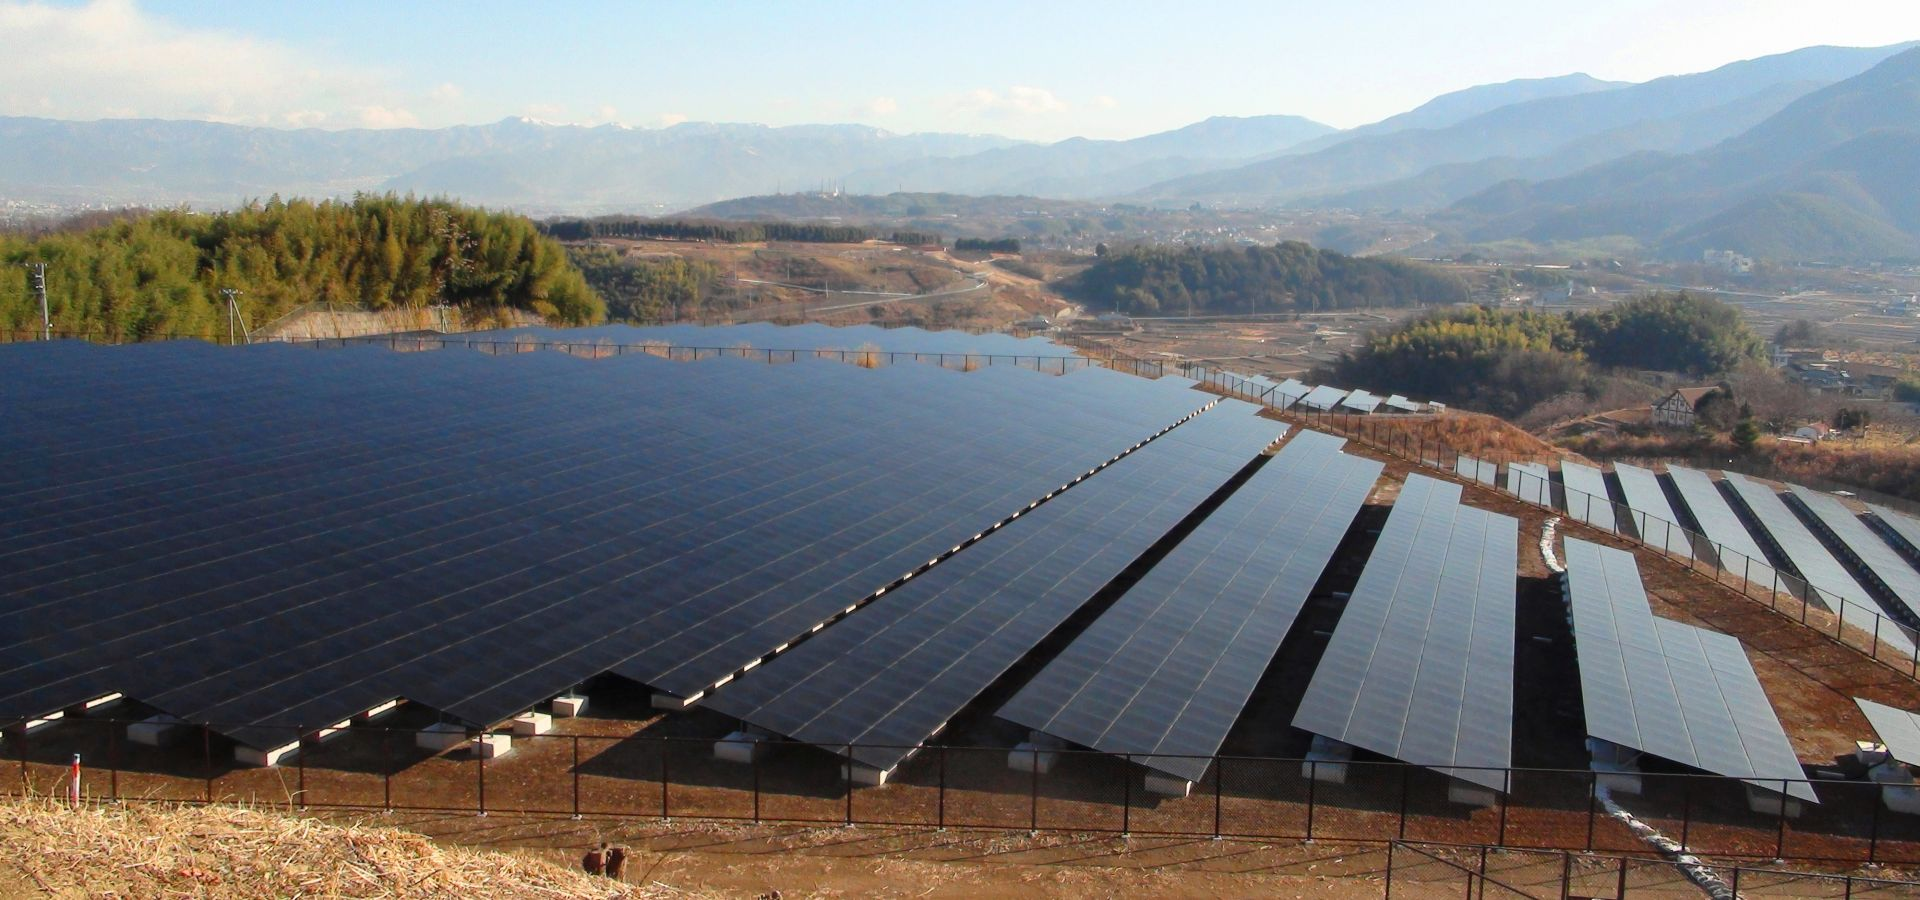 A huge solar farm in front of a dry landscape in Japan.